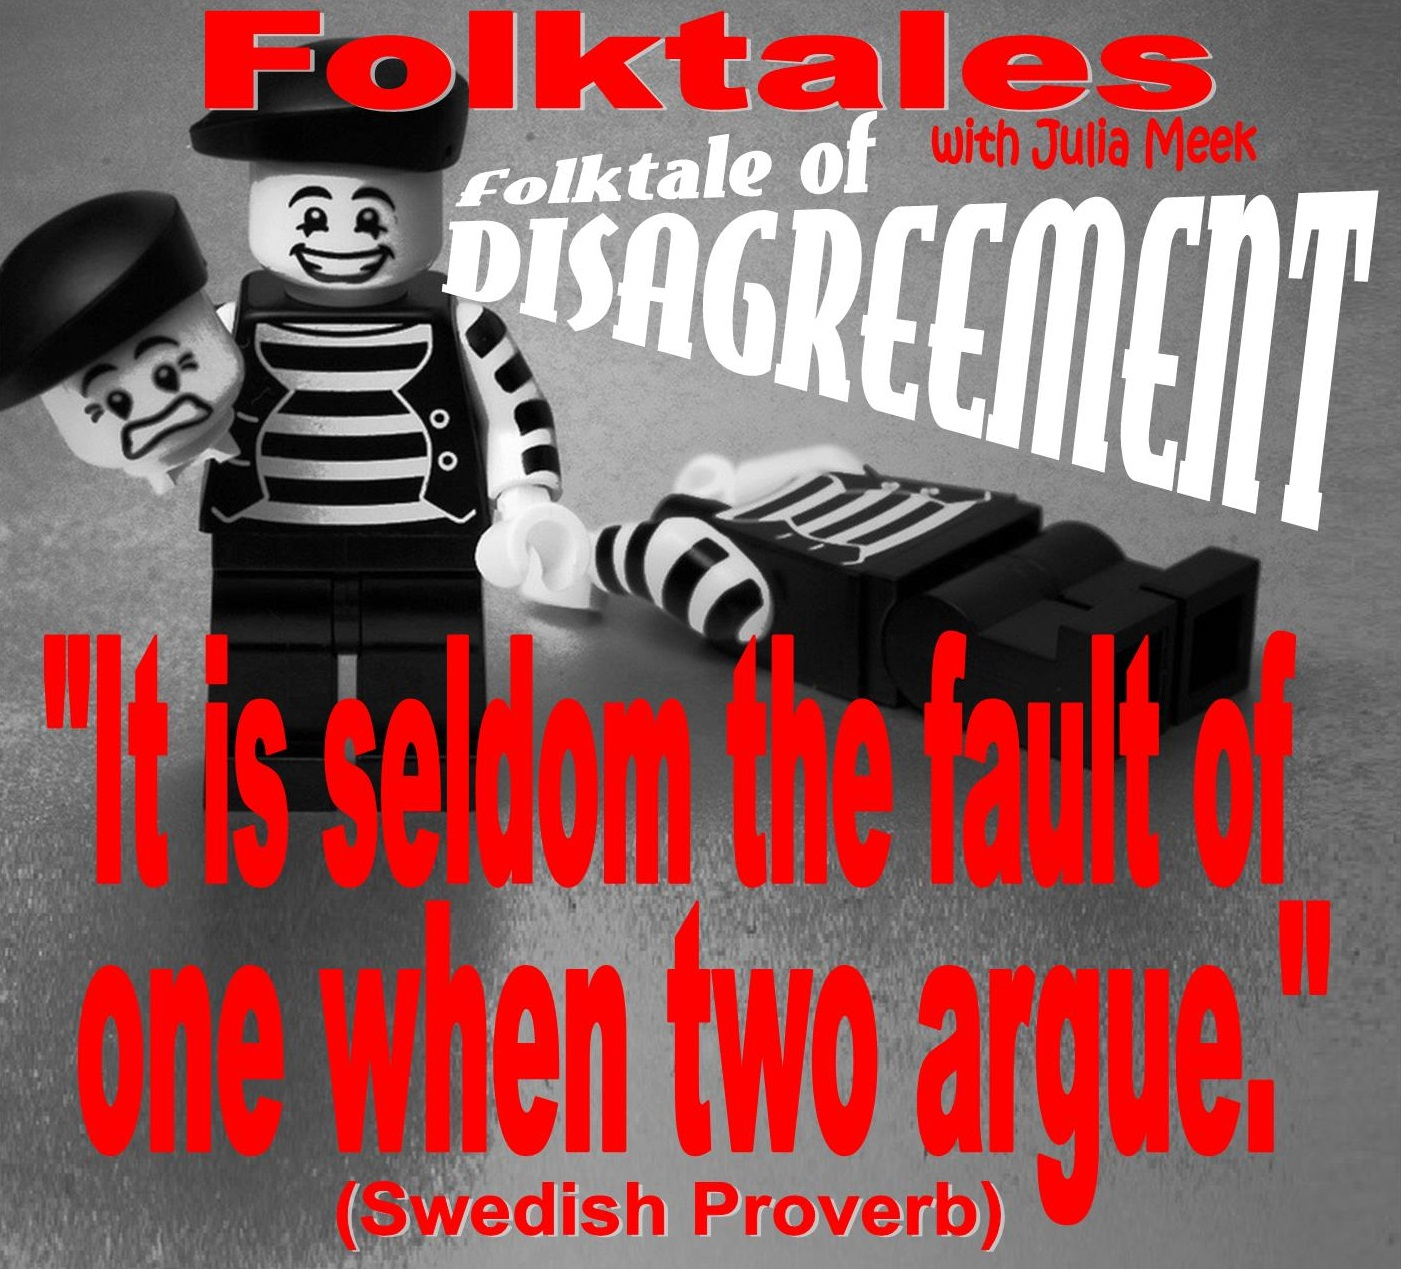 Caption: WBOI's Folkale of Disagreement, Credit: Julia Meek